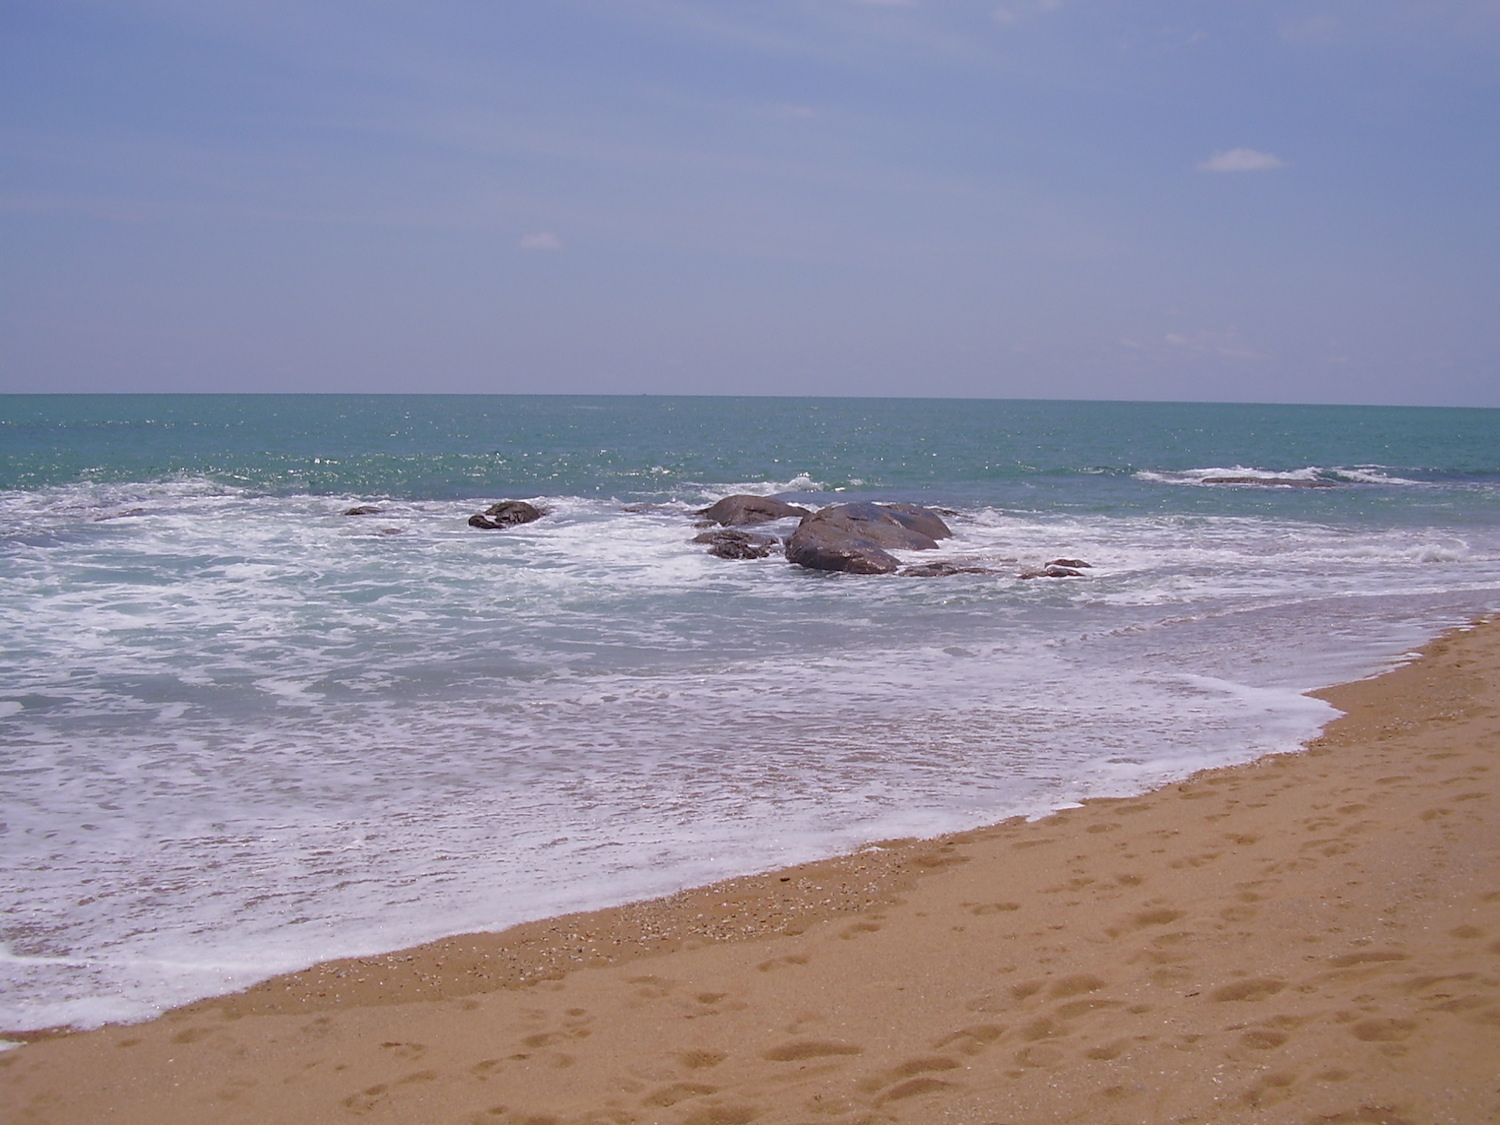 Pic: Intended and Eventual Destination - Khao Lak